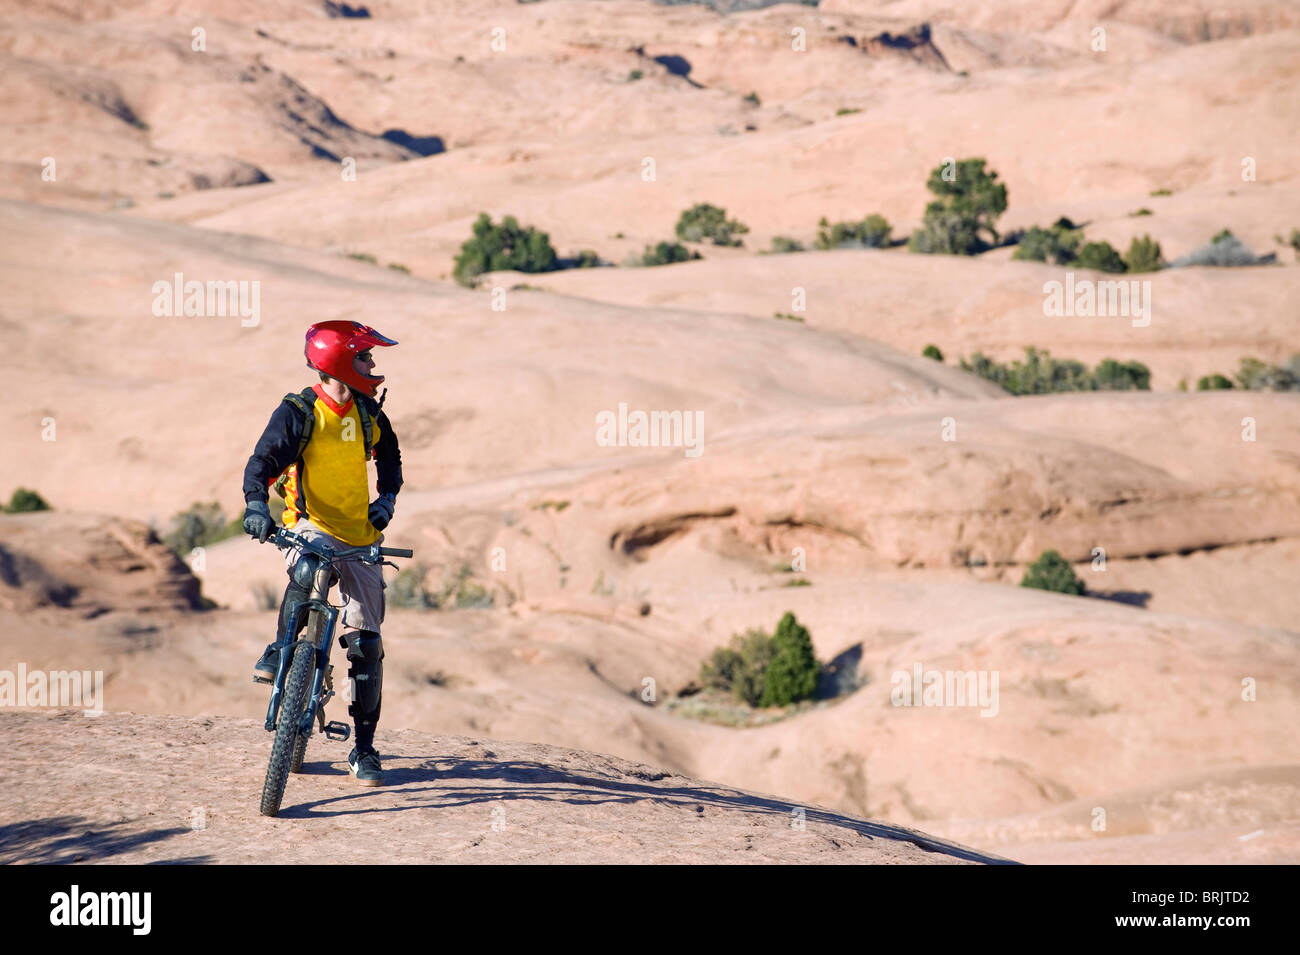 A mountain biker rests during a ride on the Slickrock Trail, Moab, UT. - Stock Image